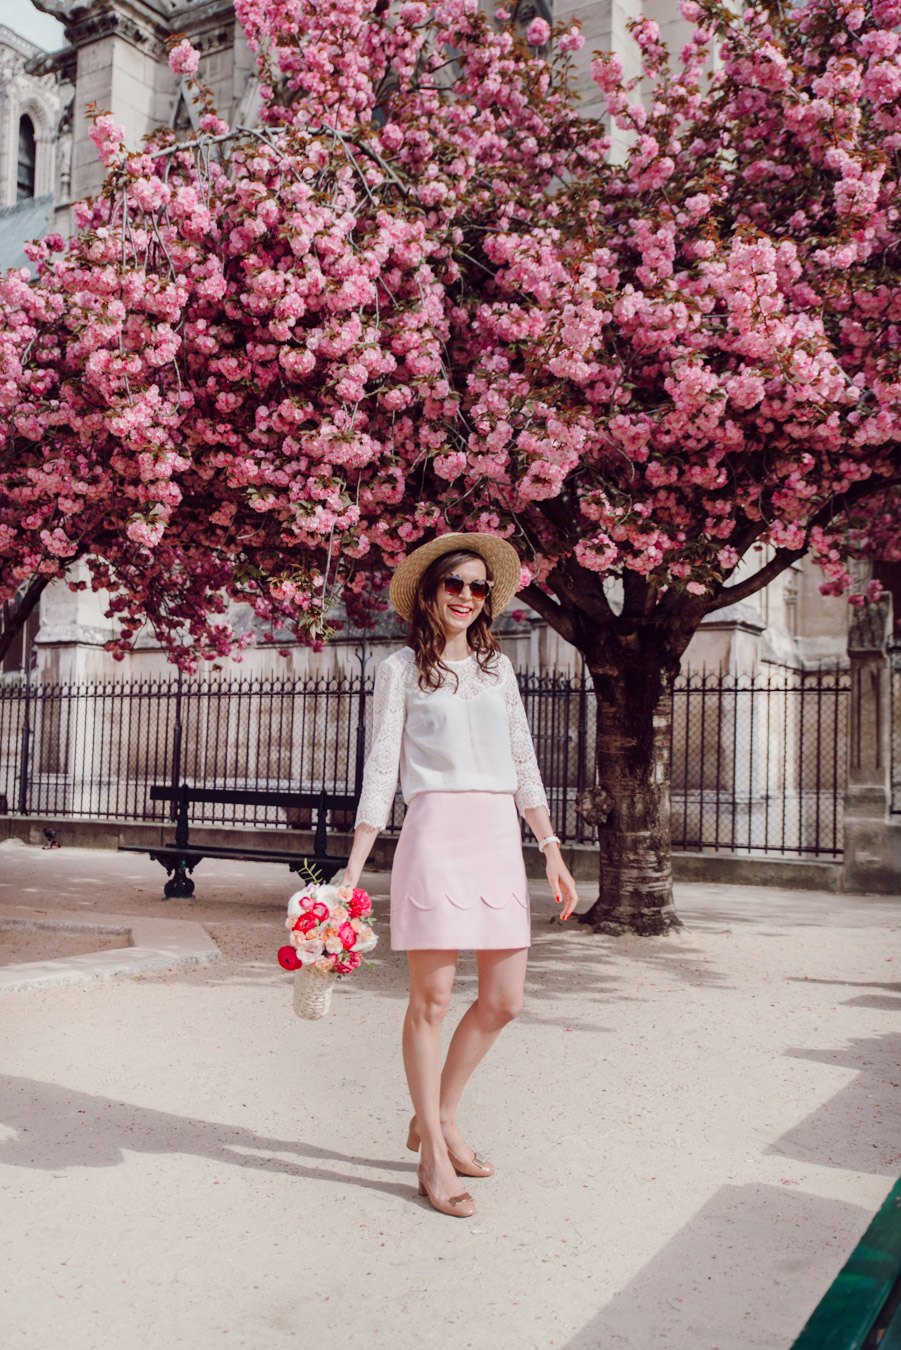 Blog-Mode-And-The-City-Looks-Notre-Dame-arbre-en-fleurs-3